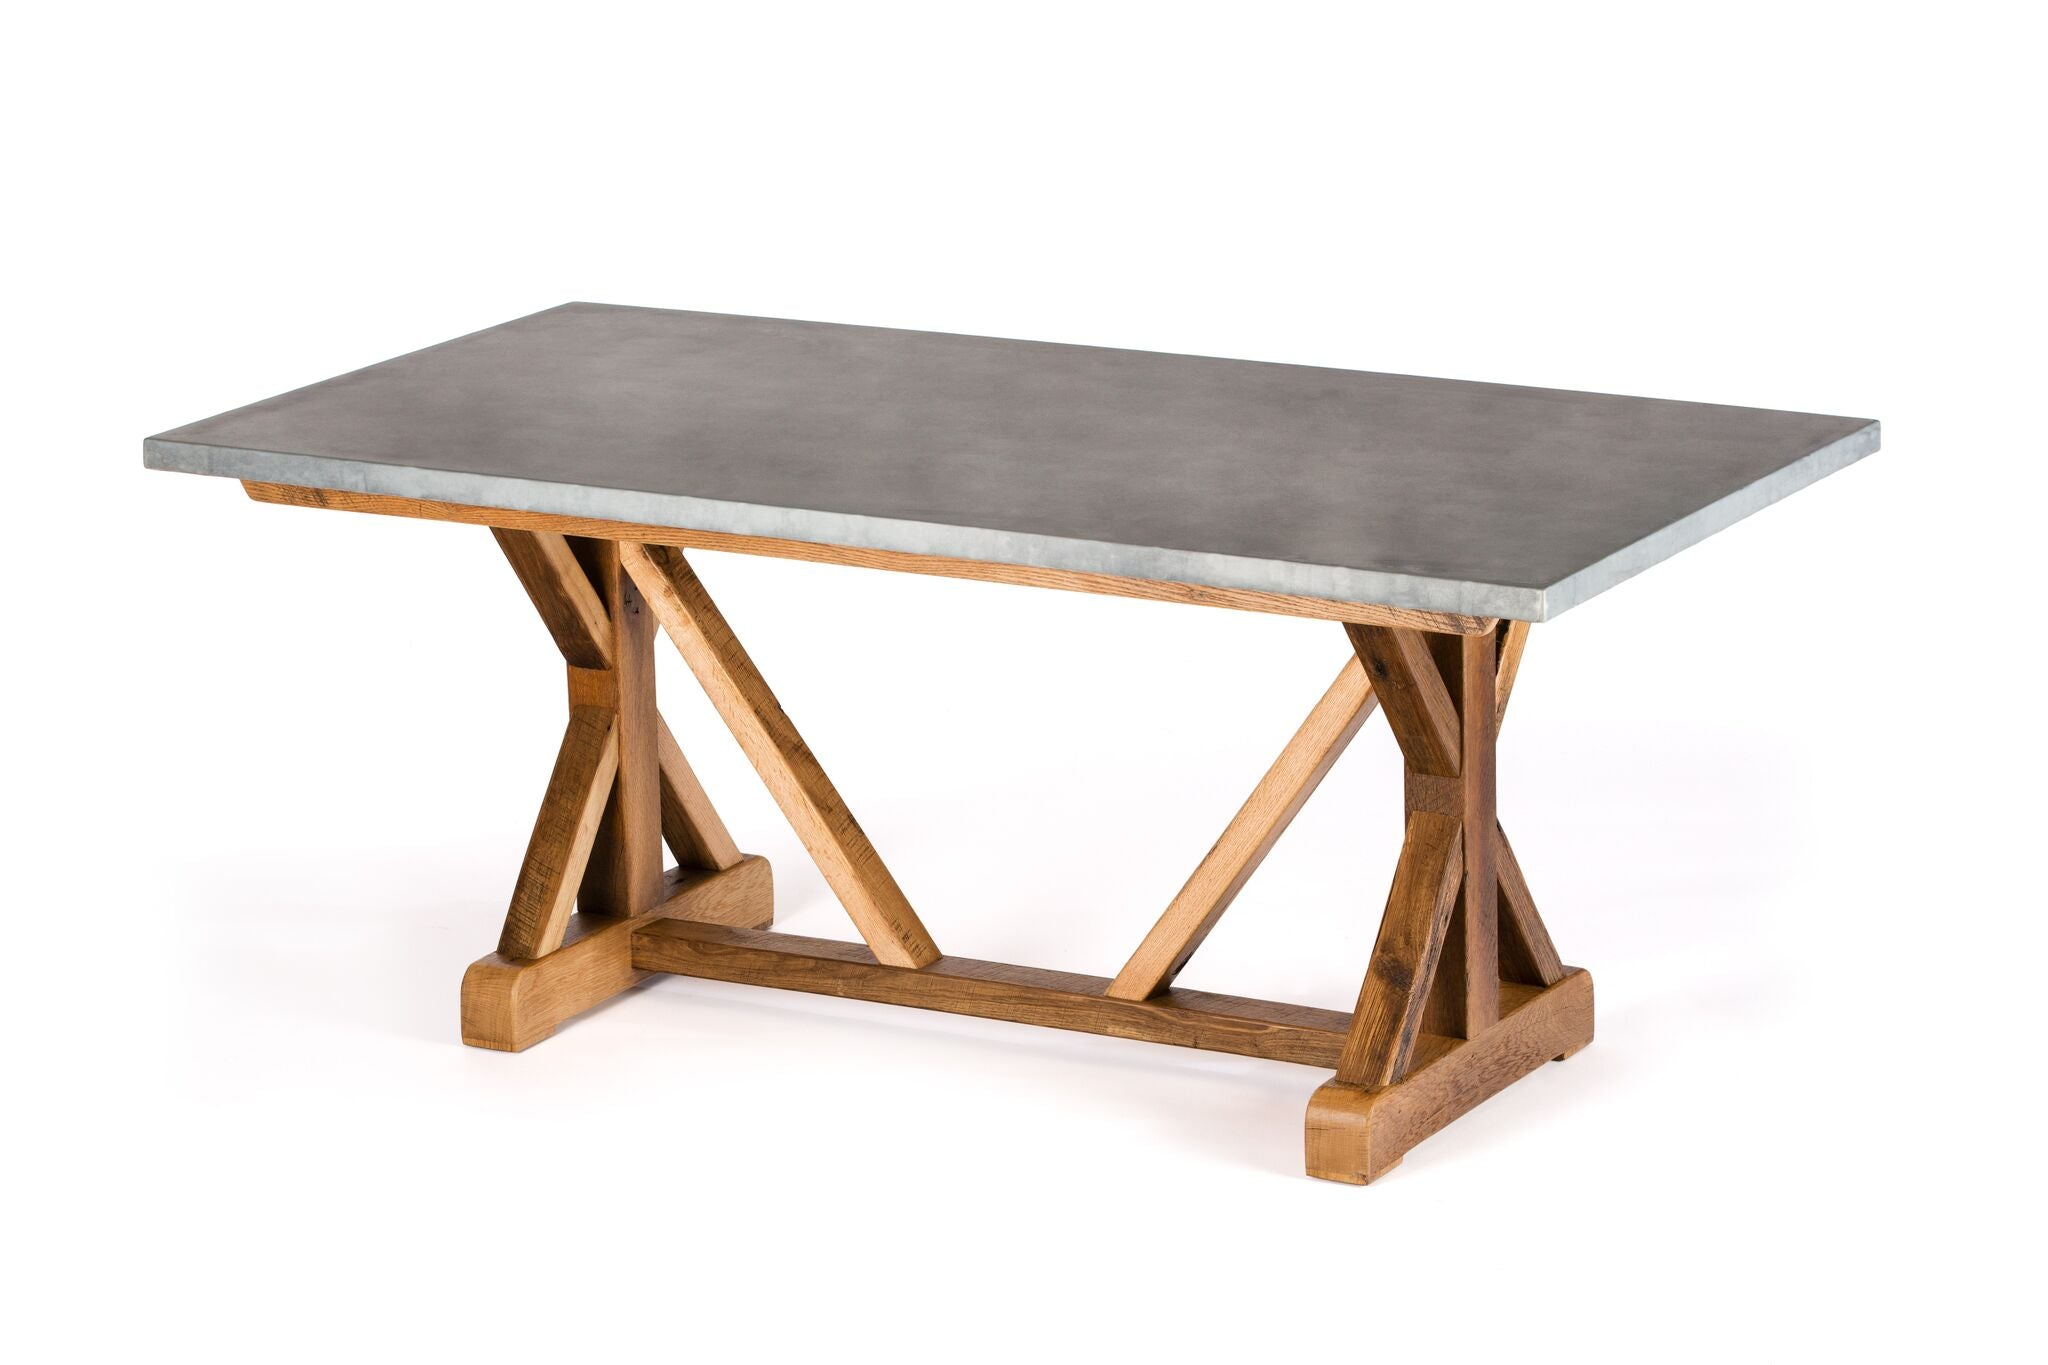 "Zinc Rectangular Table | French Trestle Table | CLASSIC | Natural Reclaimed Oak | CUSTOM SIZE 60""L 37""W 30""H 